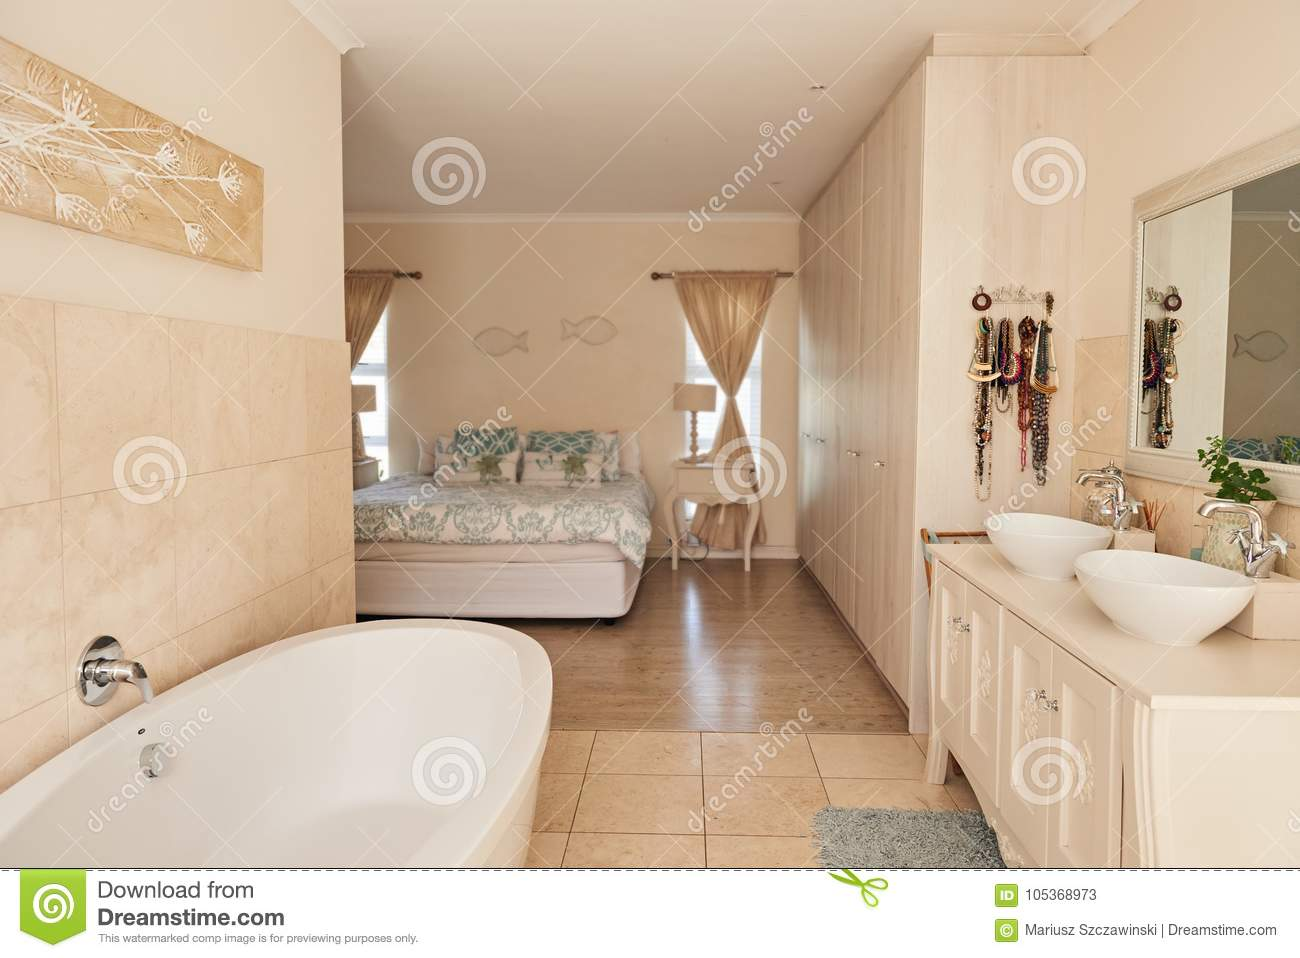 bedroom interior country modern concept country style   Contemporary Bathroom Interior In A Stylish Suburban Home ...